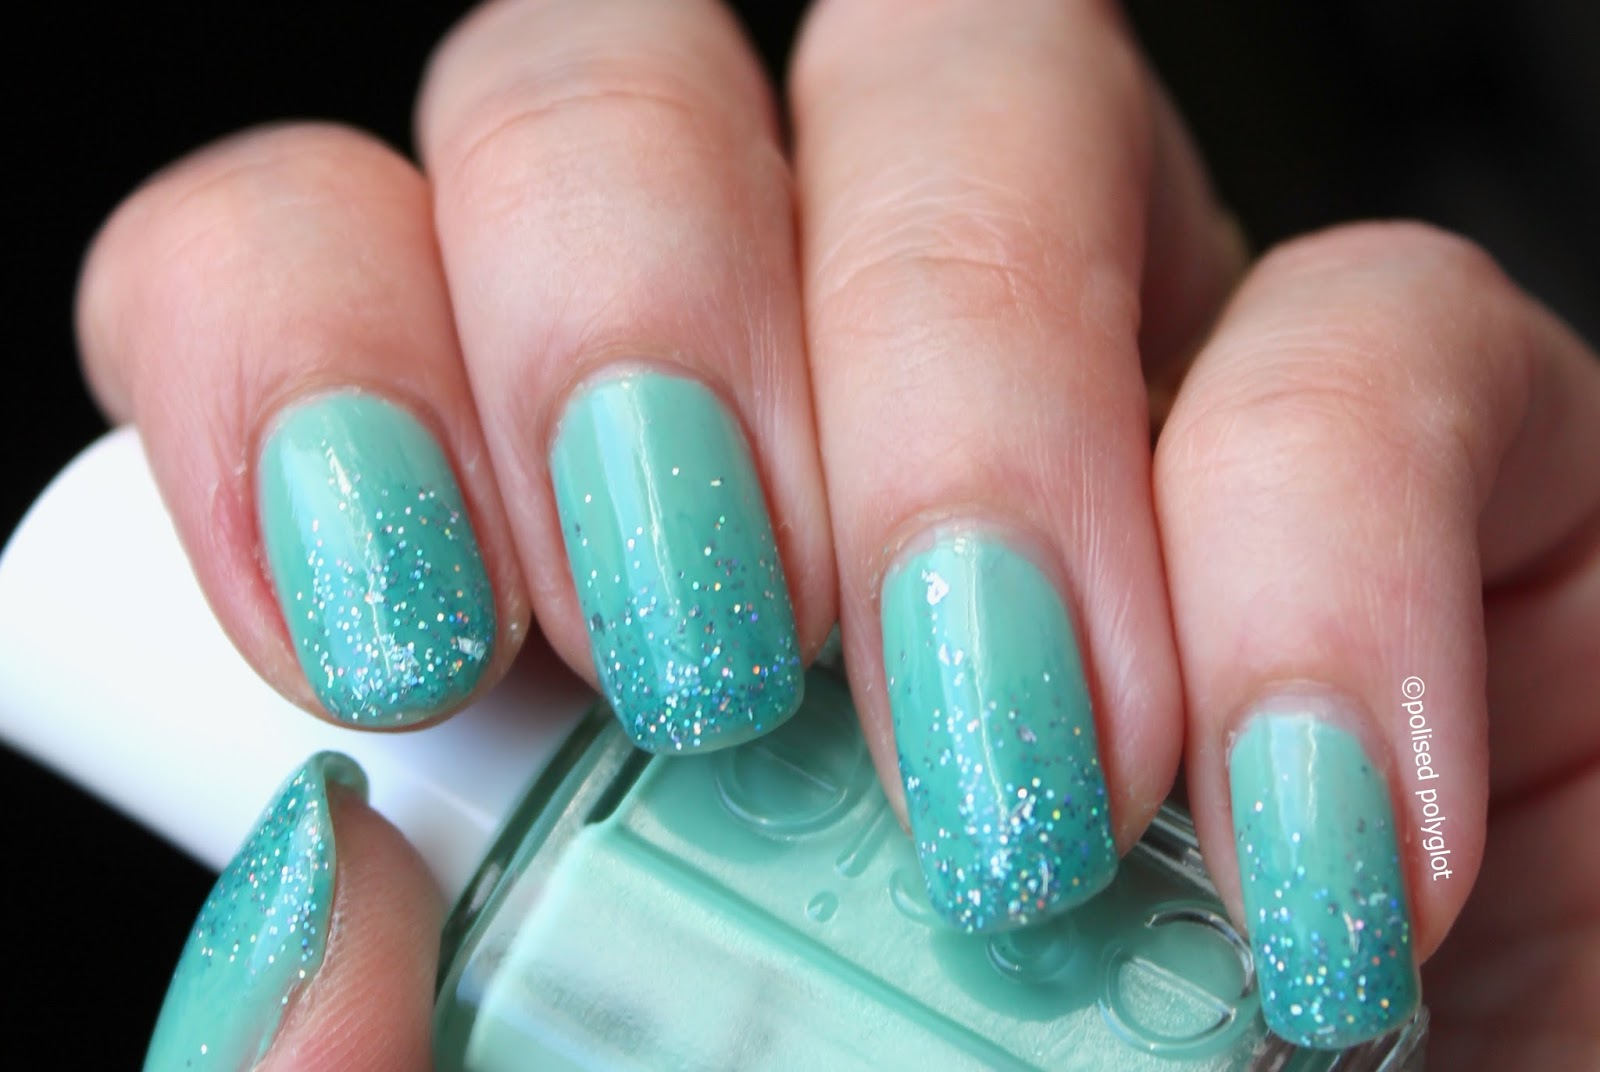 For This Manicure I First Painted Three Thin Coats Of Essie Turquoise And Caicos Which According To The Definition Adopted Is A True